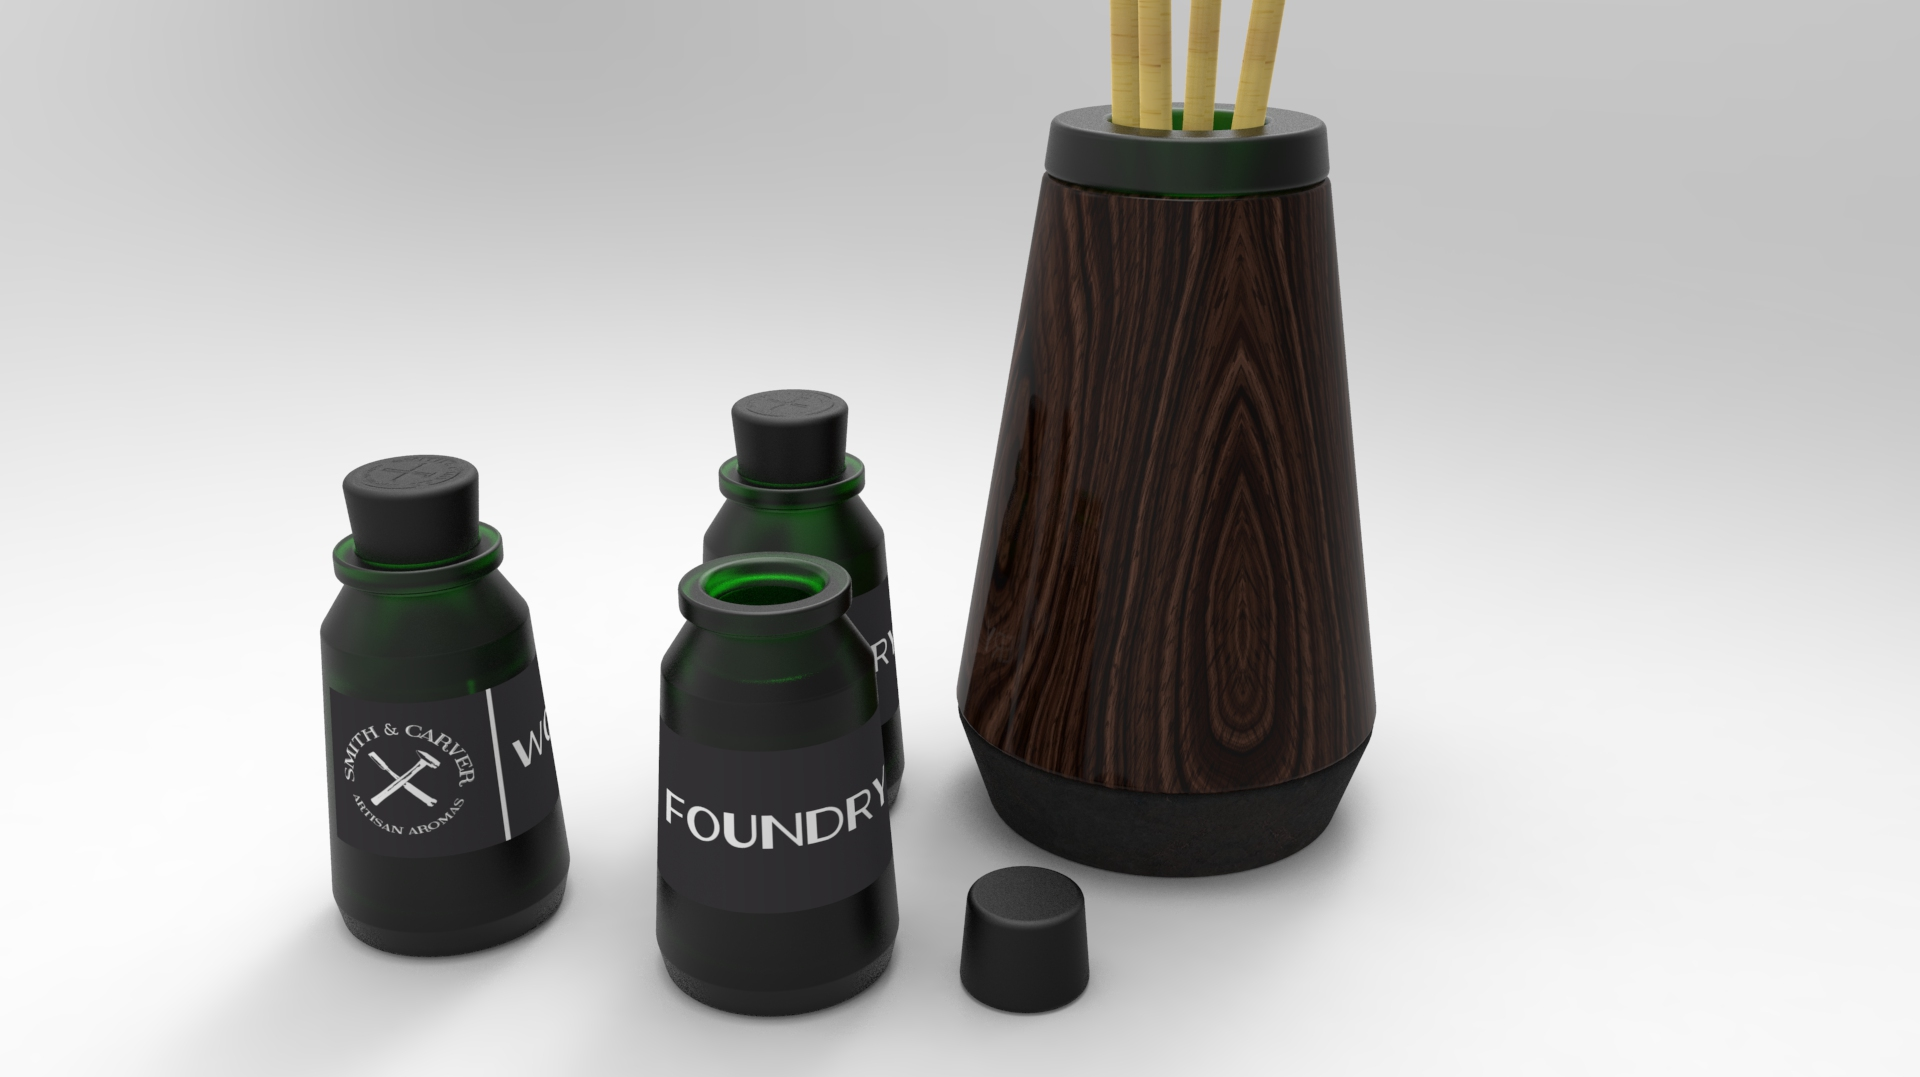 Frosted glass aromatherapy bottles with a diffuser constructed of turned walnut, cast iron, and frosted glass.